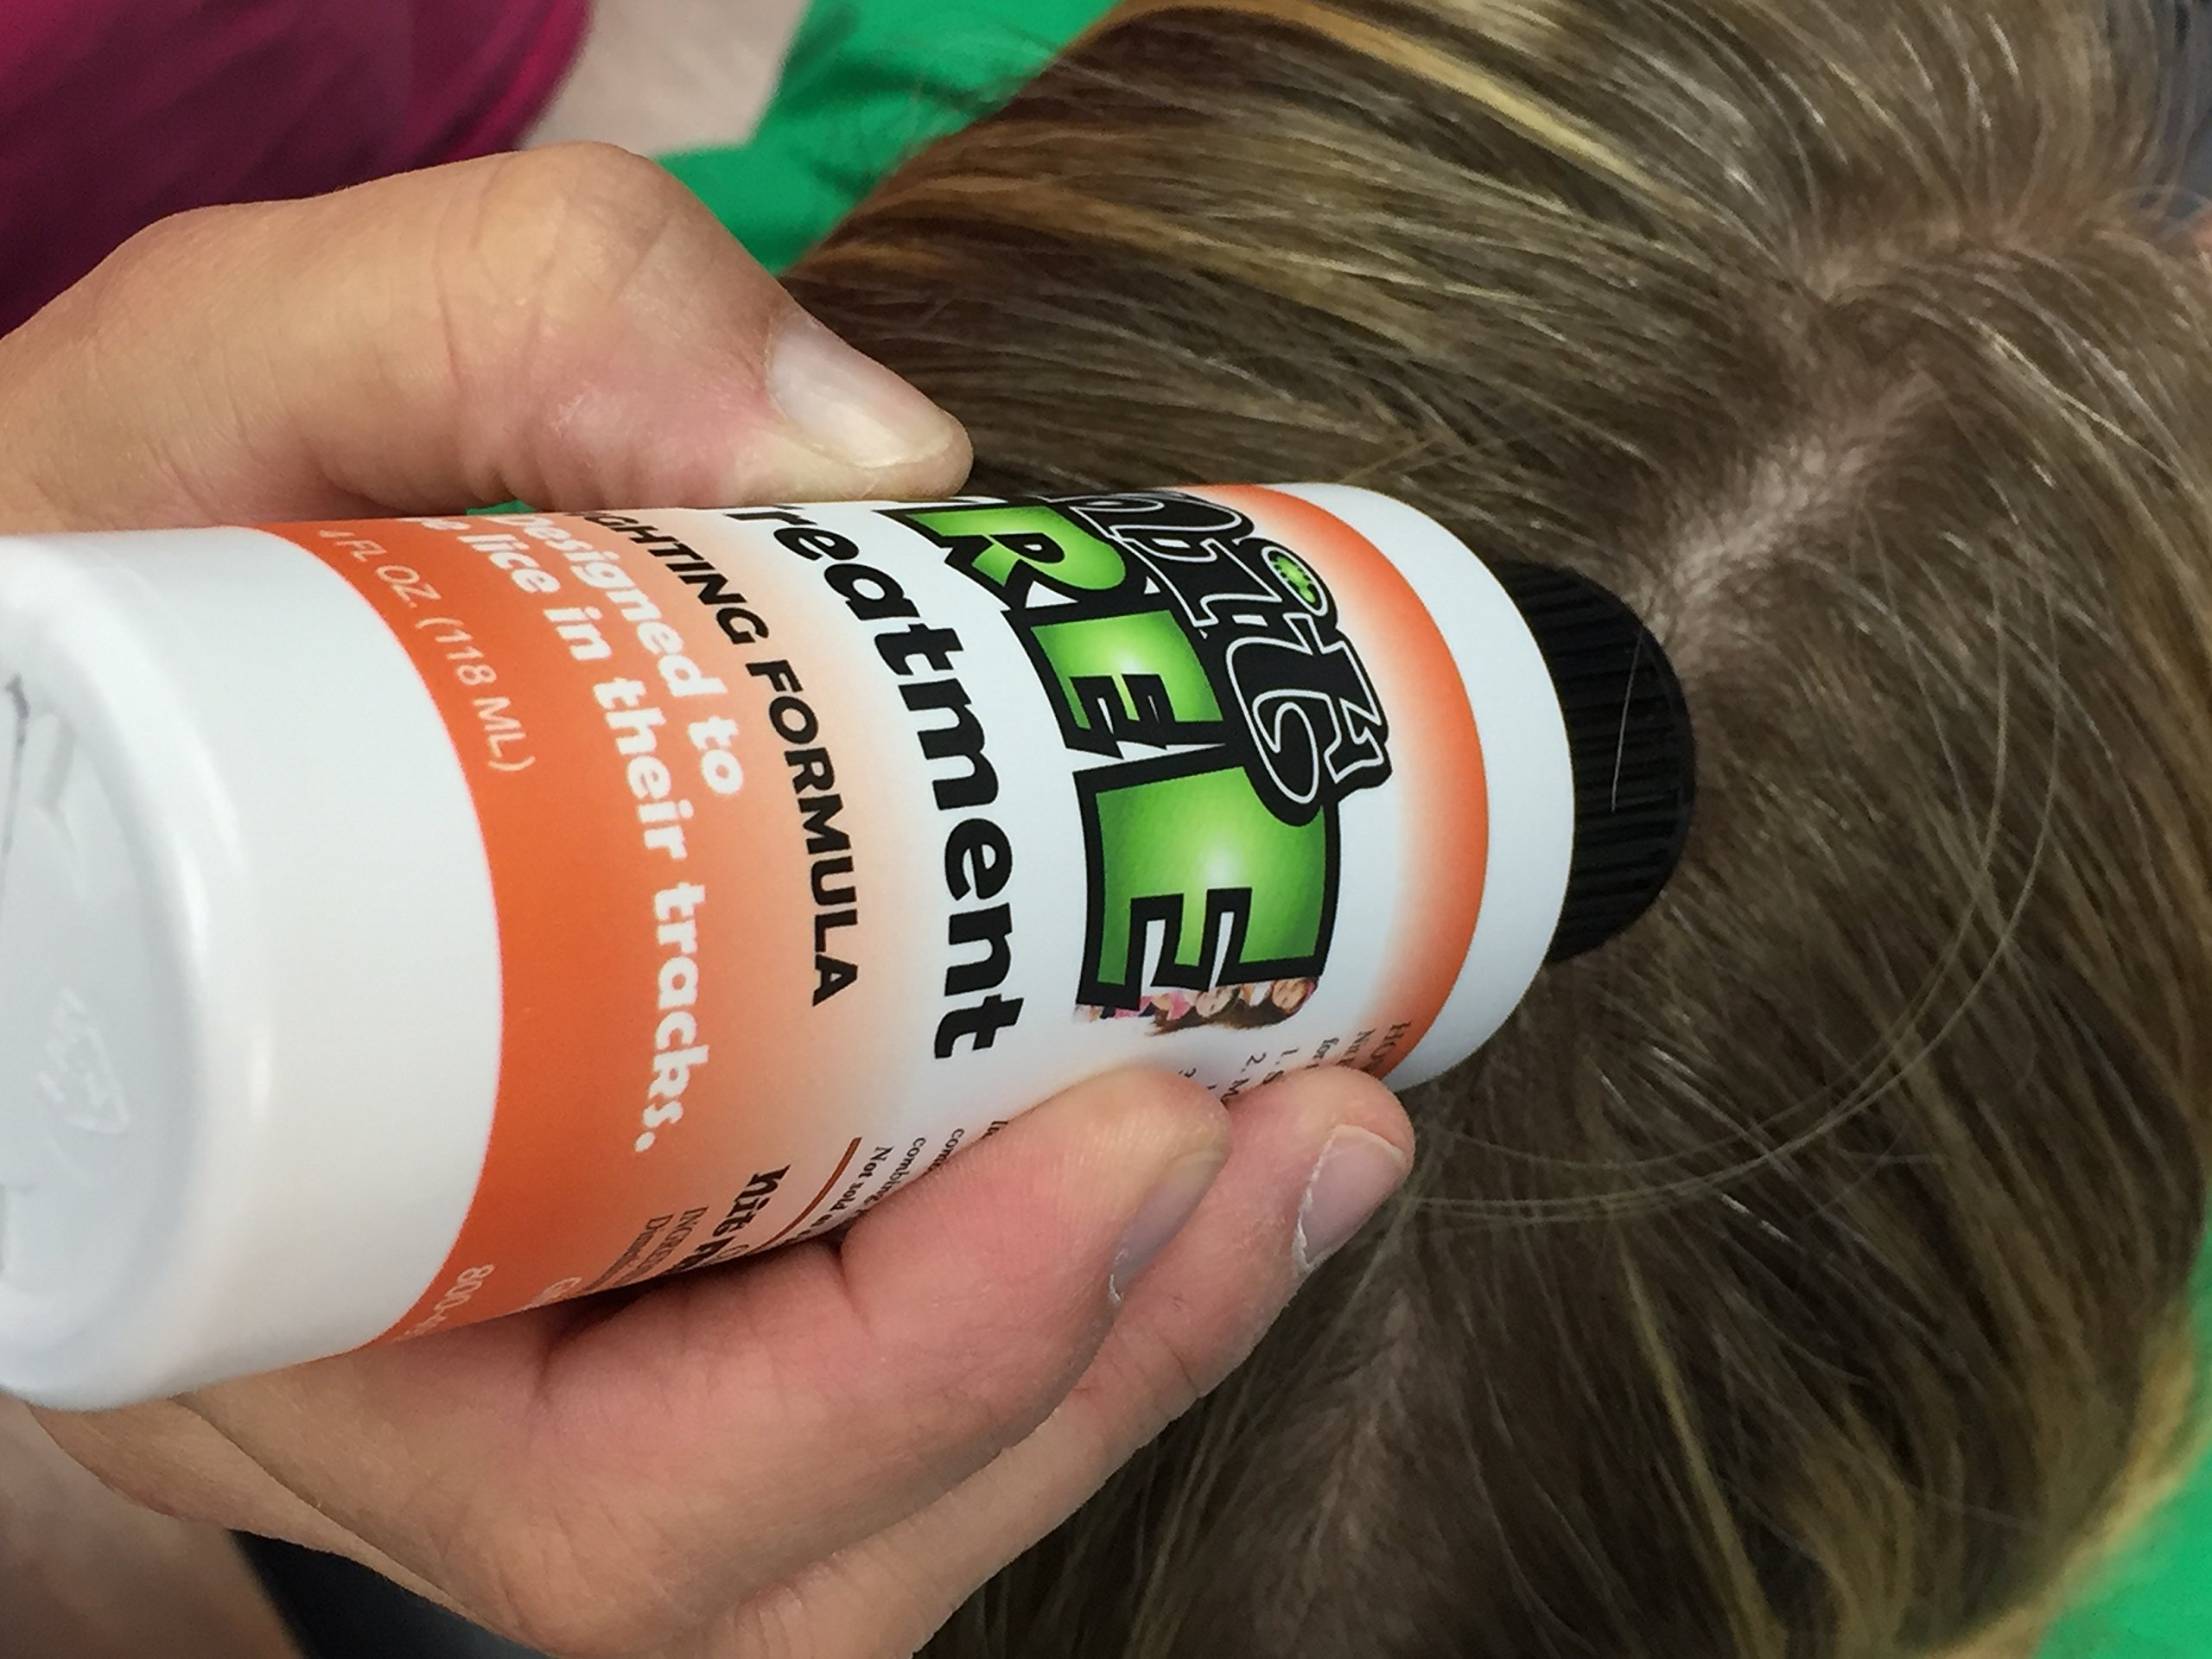 Nit Free Lice Treatment Shampoo for Head Lice. 4oz Olive Oil Based Headlice Treatment. For Removal of Super Lice. From the Maker of Nit Free Terminator Lice Comb and Lice Prevention Products